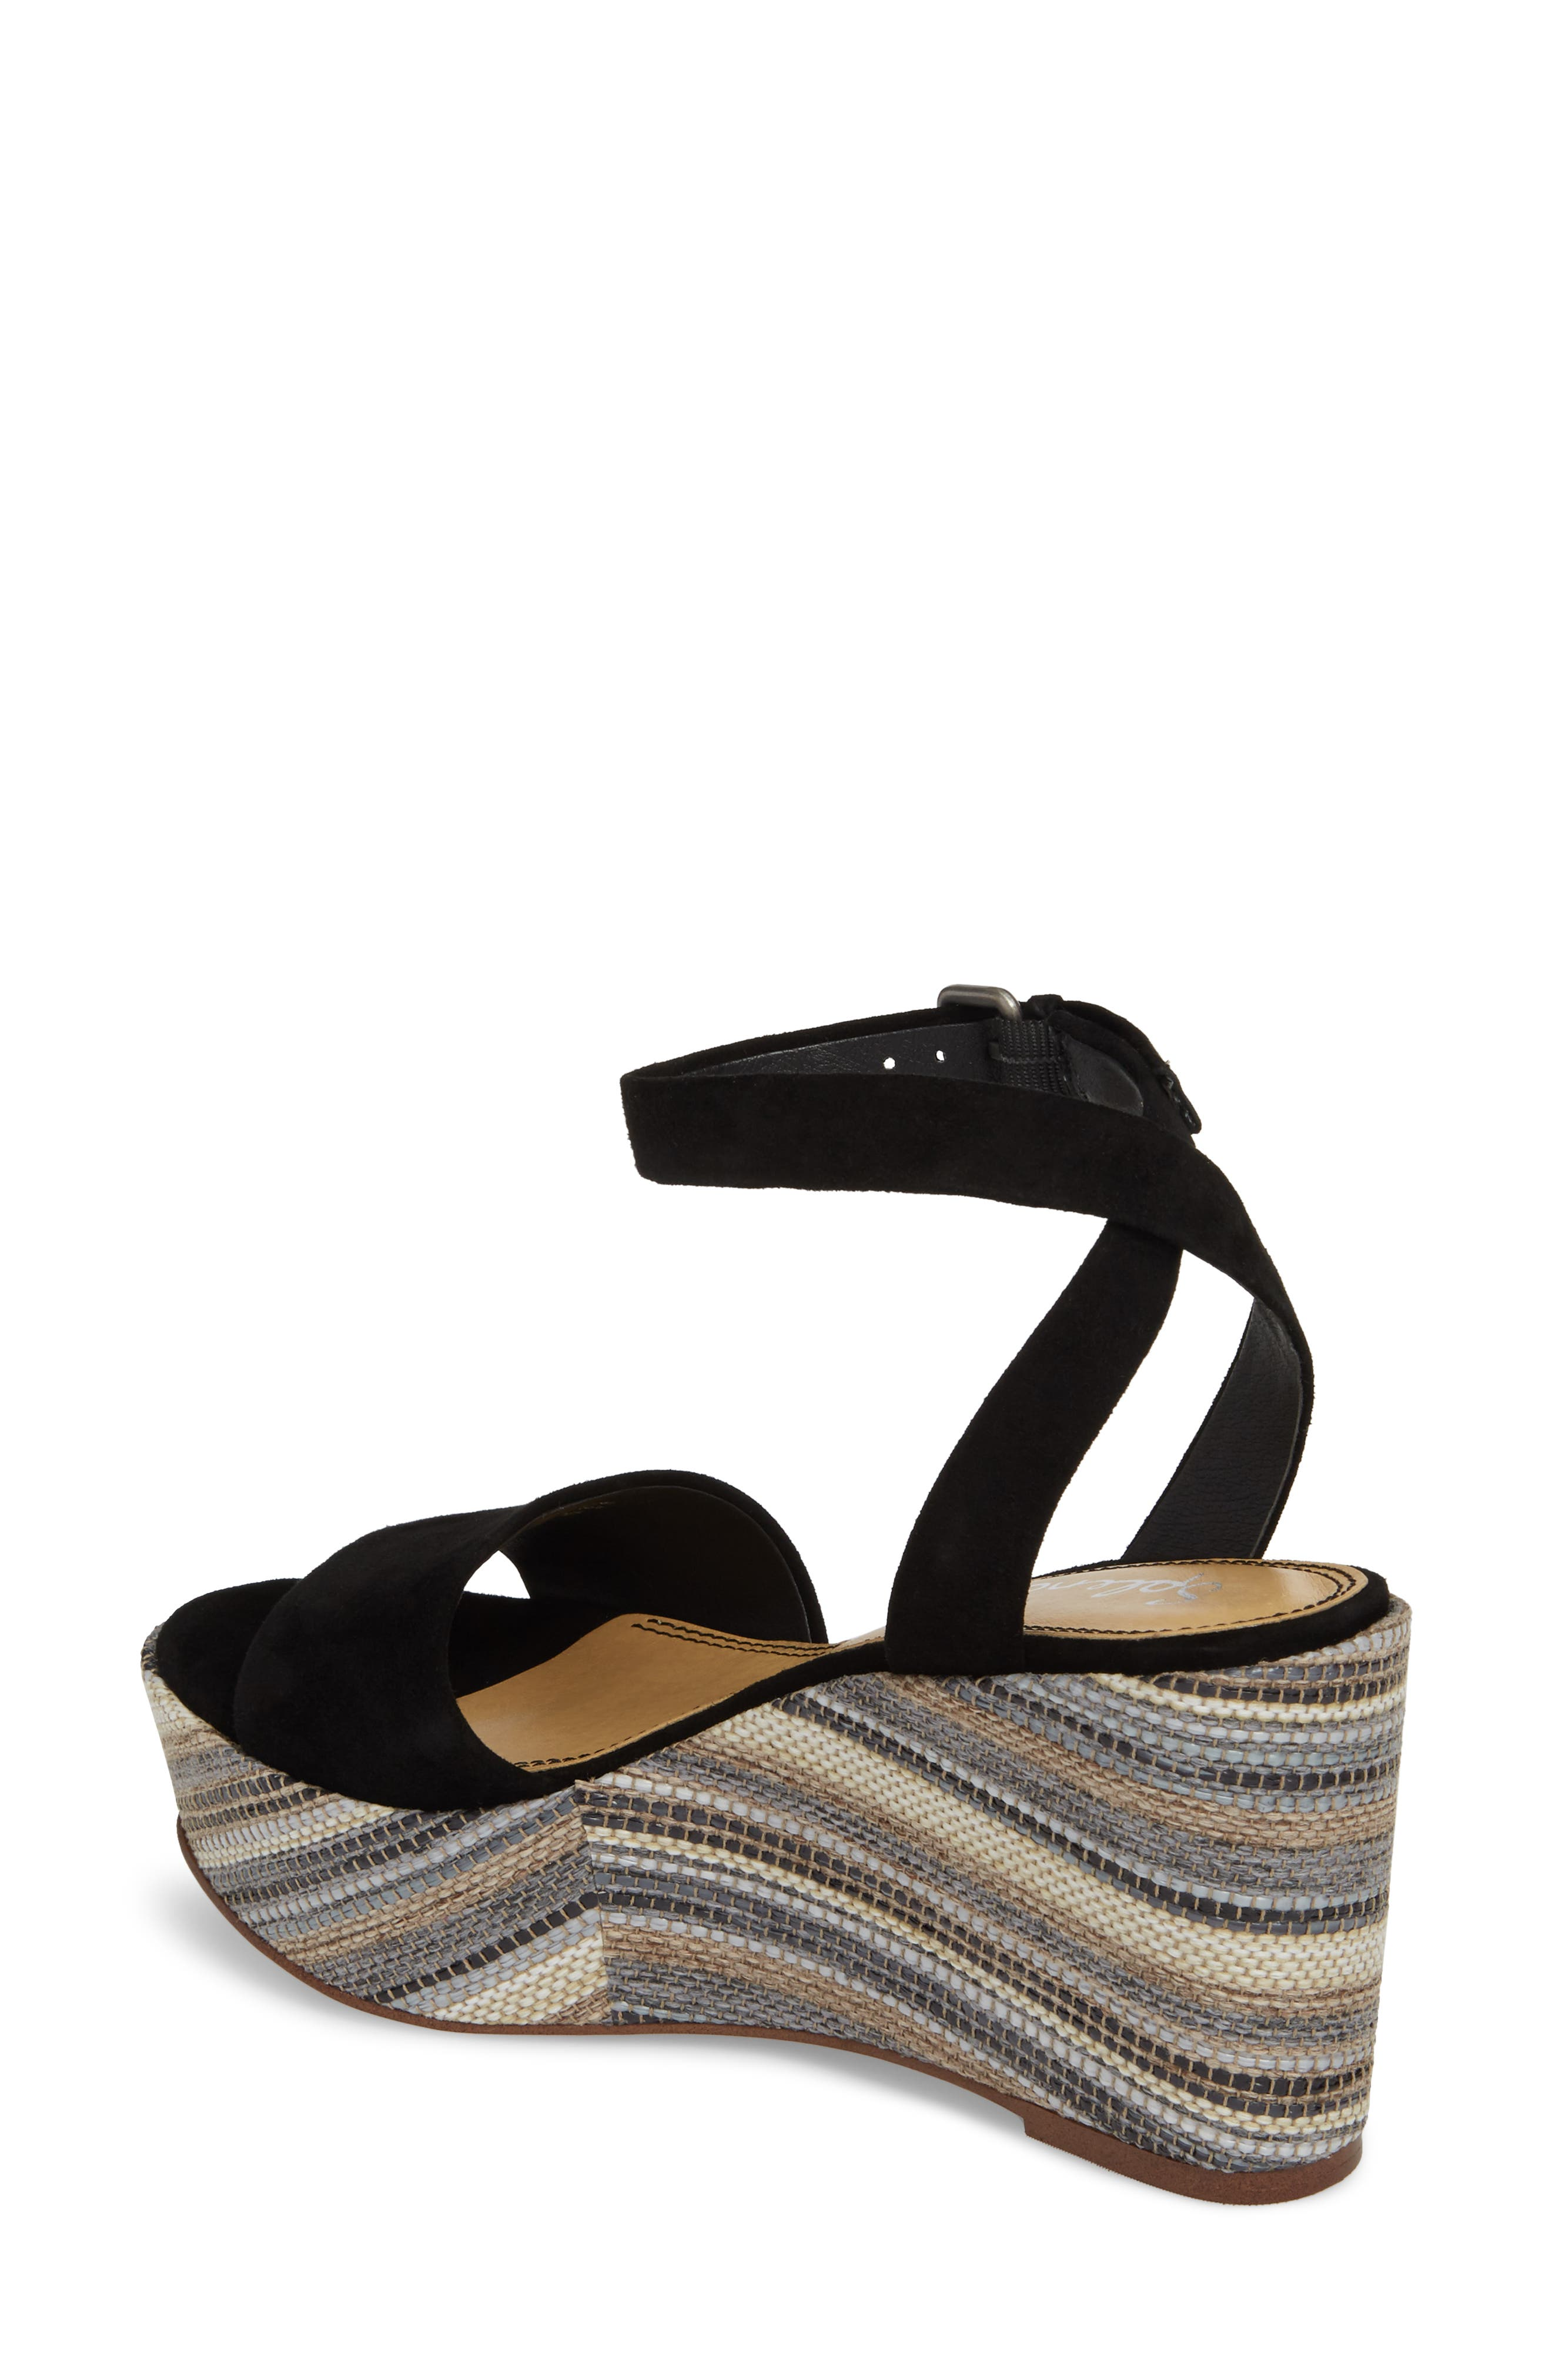 Felix Platform Wedge Sandal,                             Alternate thumbnail 2, color,                             BLACK MULTI SUEDE